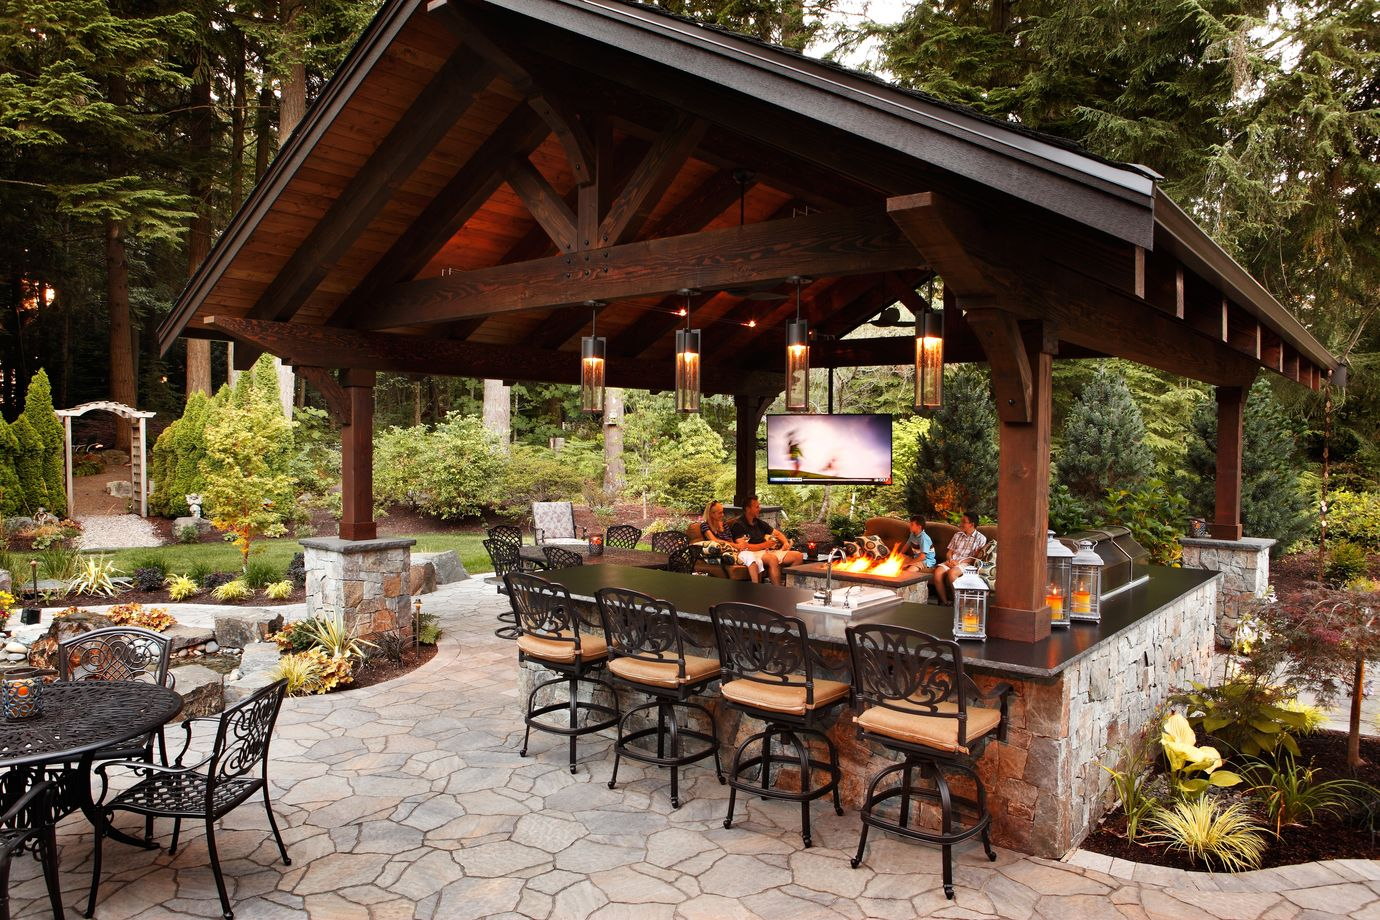 High-End Outdoor Kitchen in Louisiana - Landscaping Network |Landscape Outdoor Kitchens